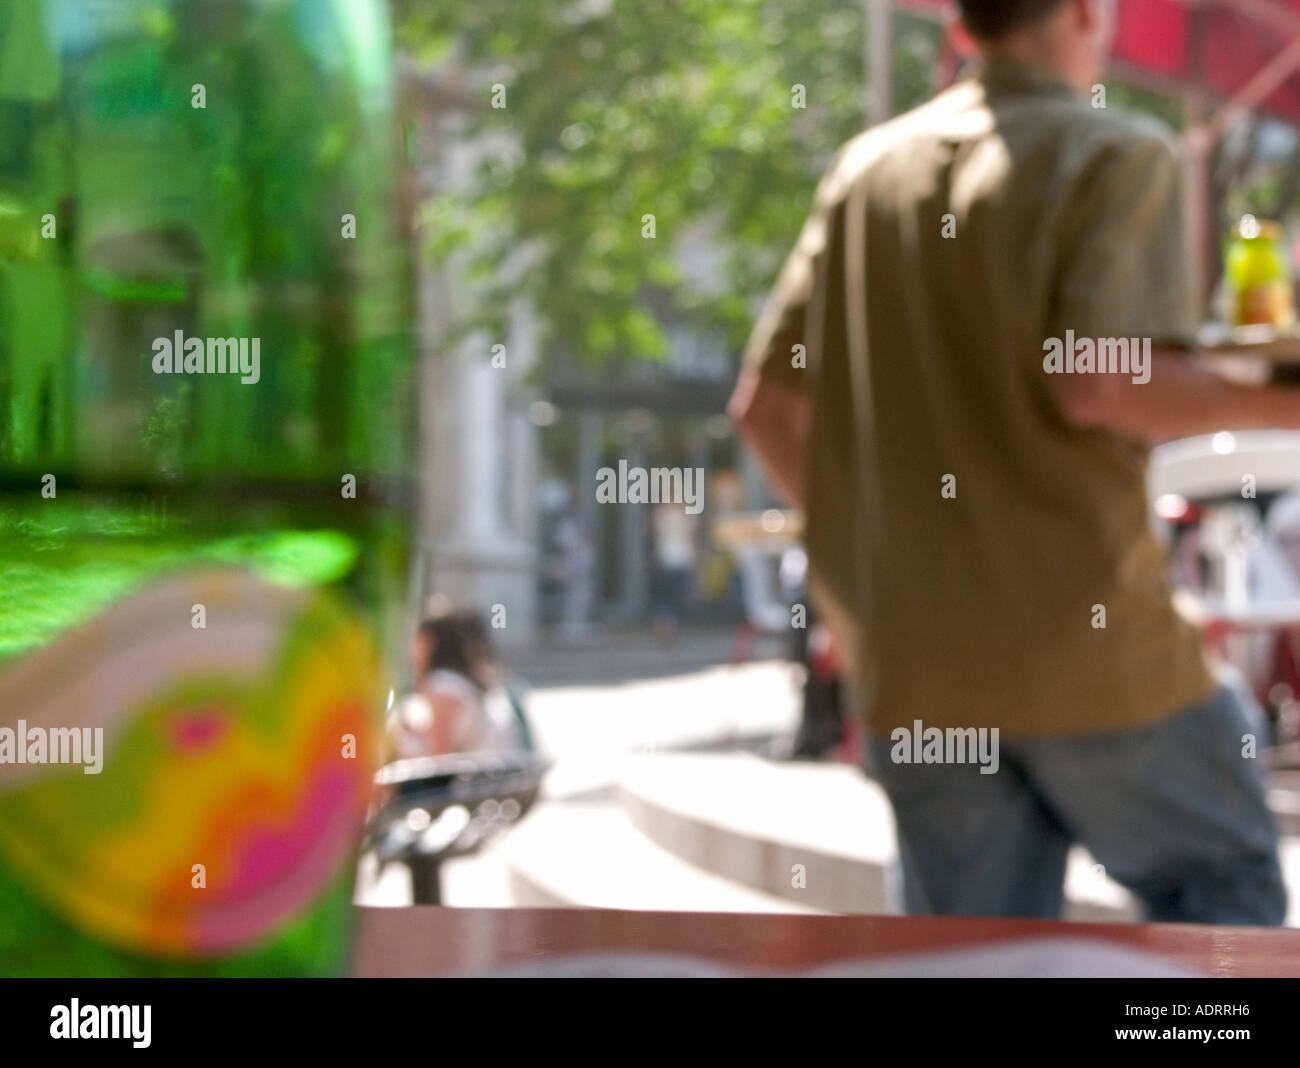 a blurred view of a french waiter carrying a tray of drinks - Stock Image